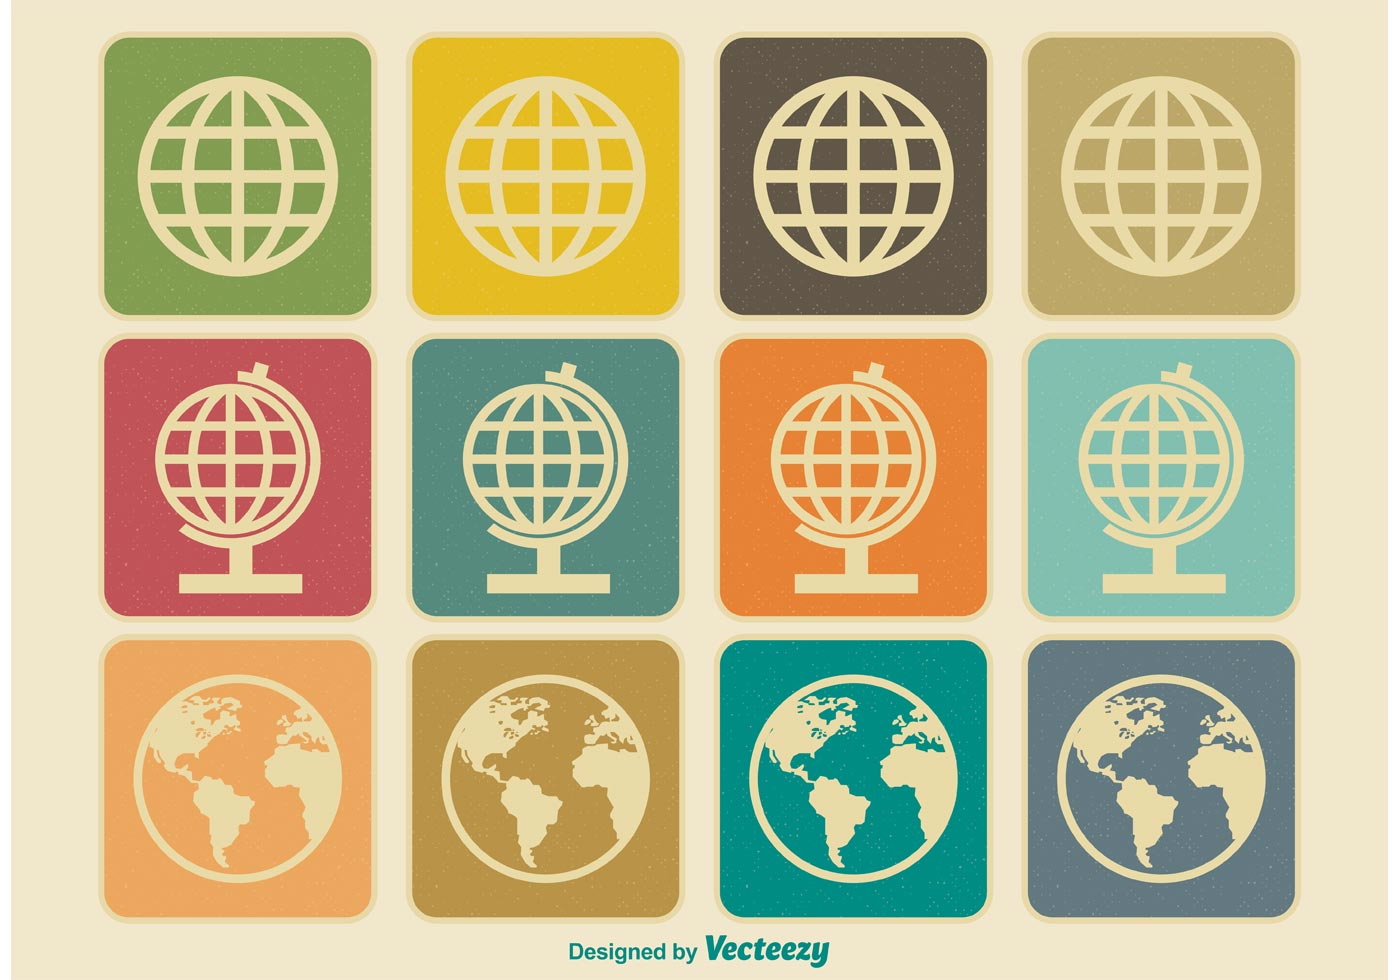 Vintage Earth / Globe Icons - Download Free Vectors ...